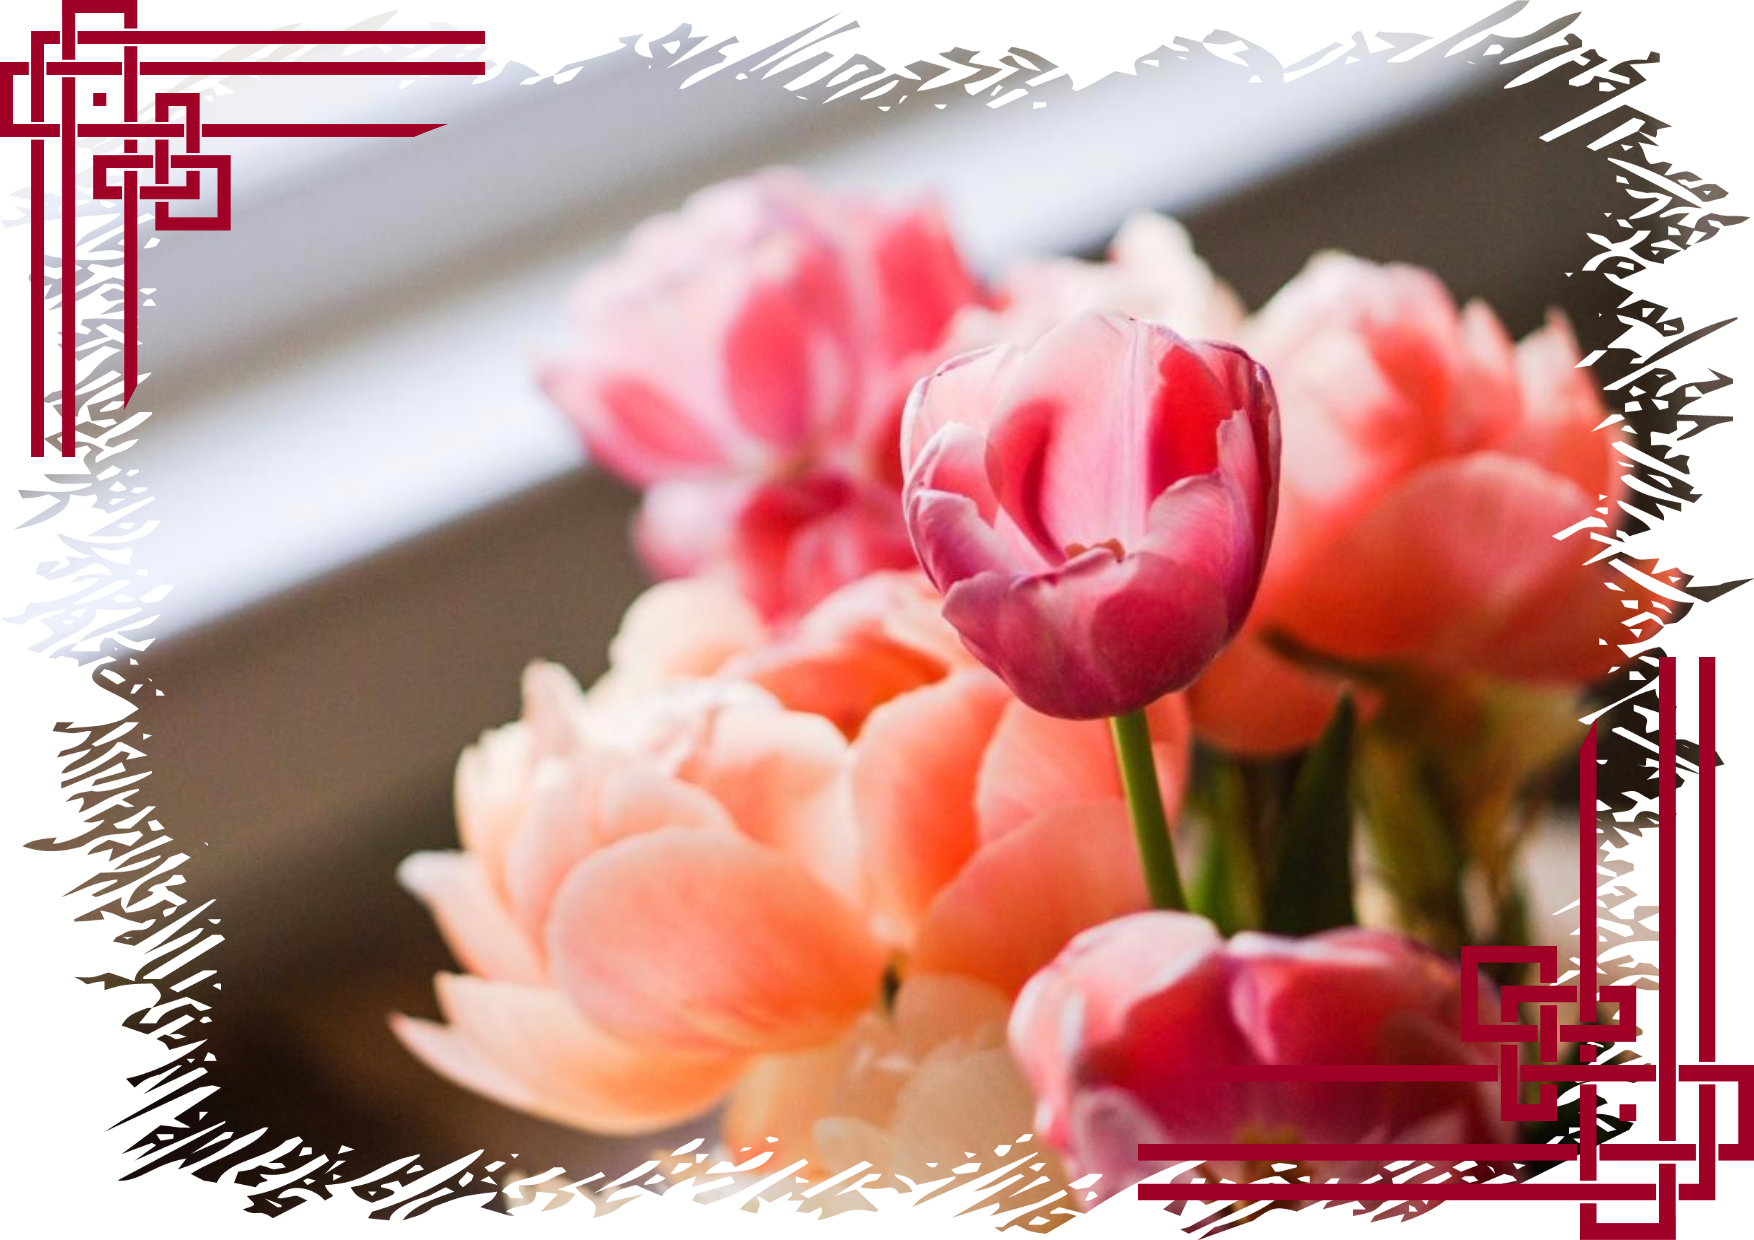 Flower,                Pink,                Plant,                Bouquet,                Arranging,                Image,                Avatar,                Love,                White,                Black,                Red,                 Free Image